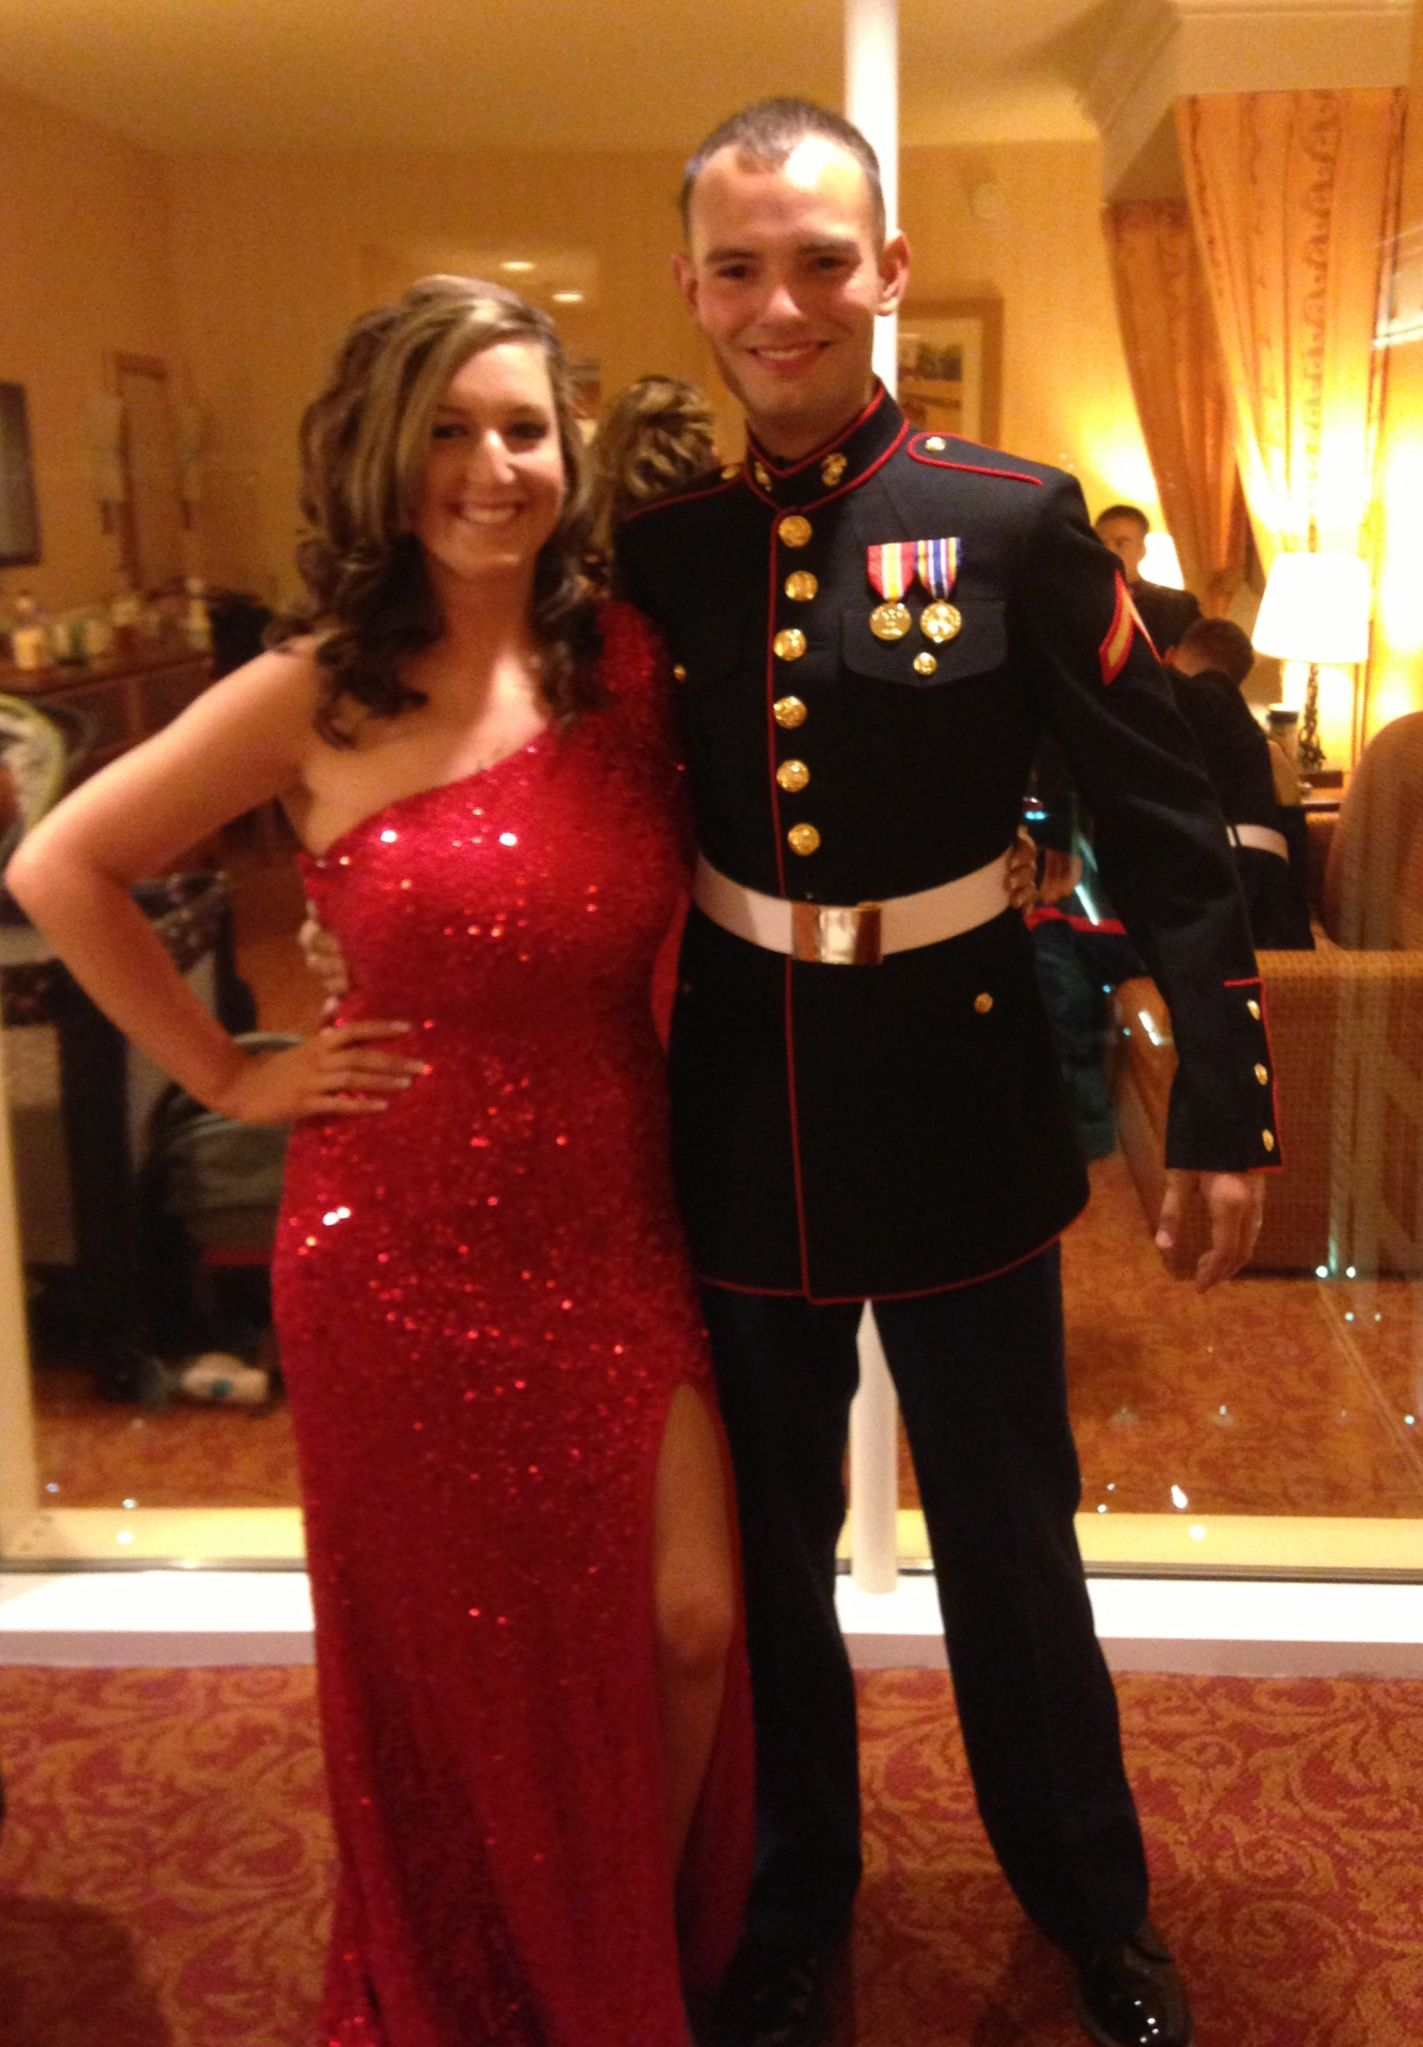 Marine Corps Ball Dress Marine Corps Ball Dress Marine Corps